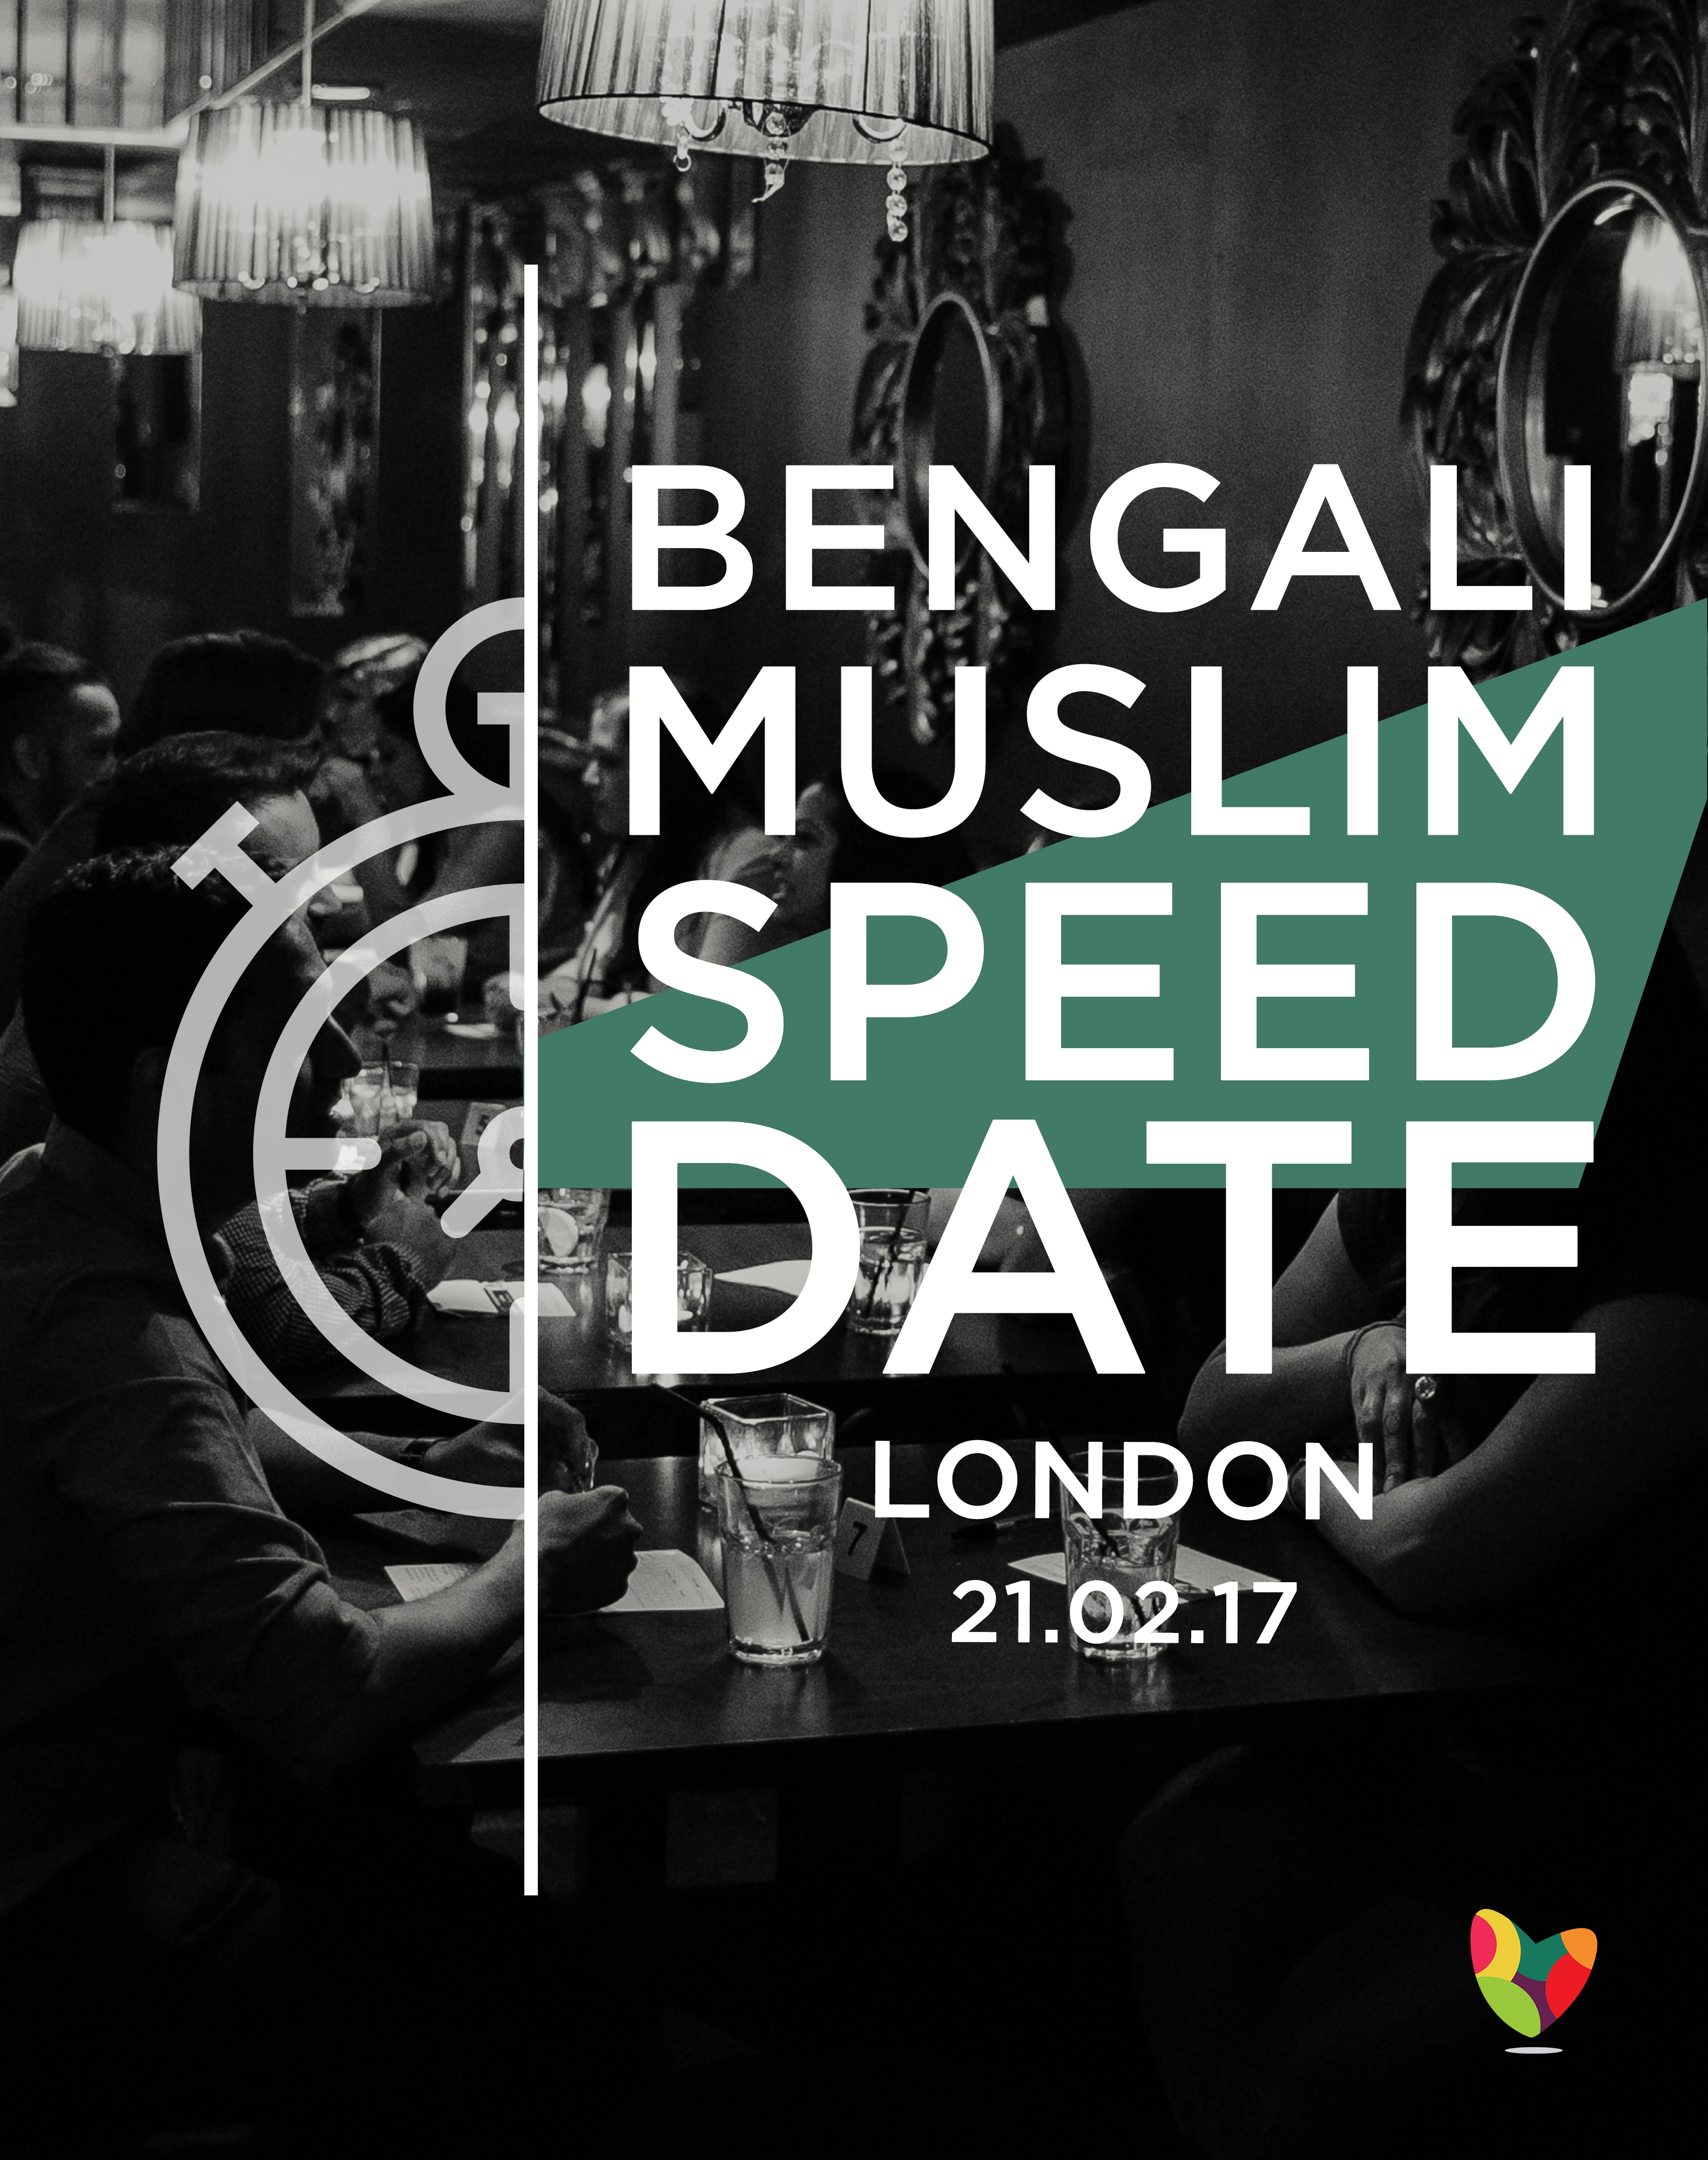 Birmingham muslim speed dating